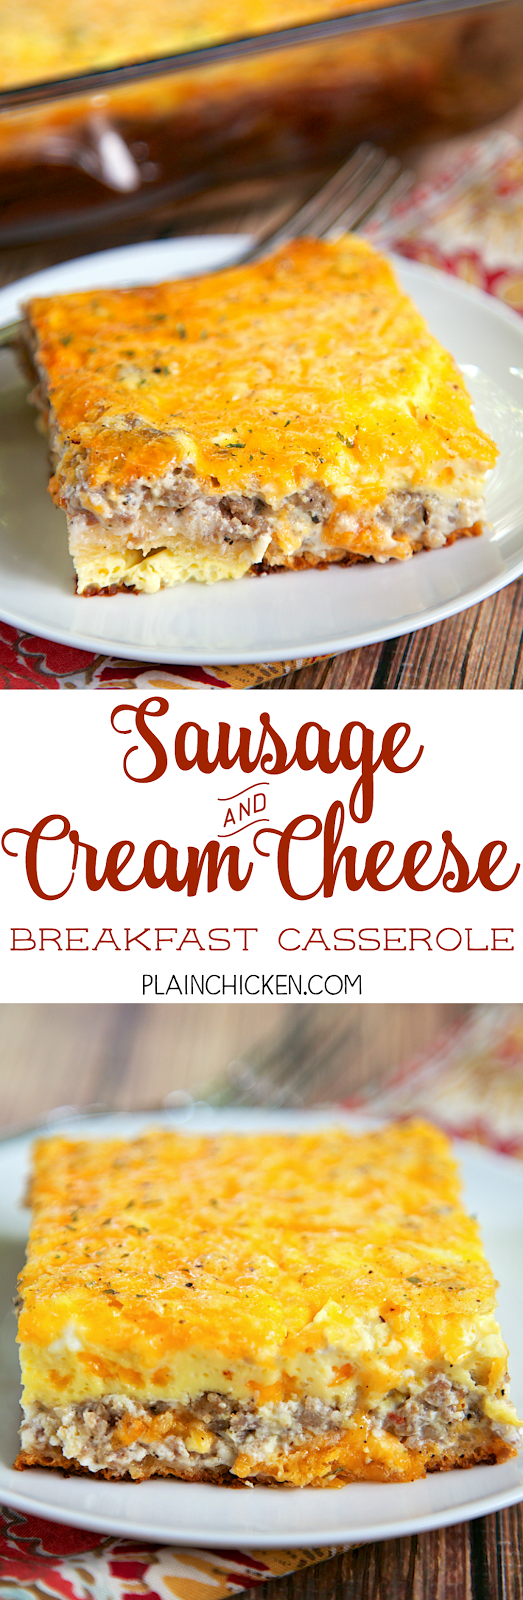 breakfast casserole with cream cheese